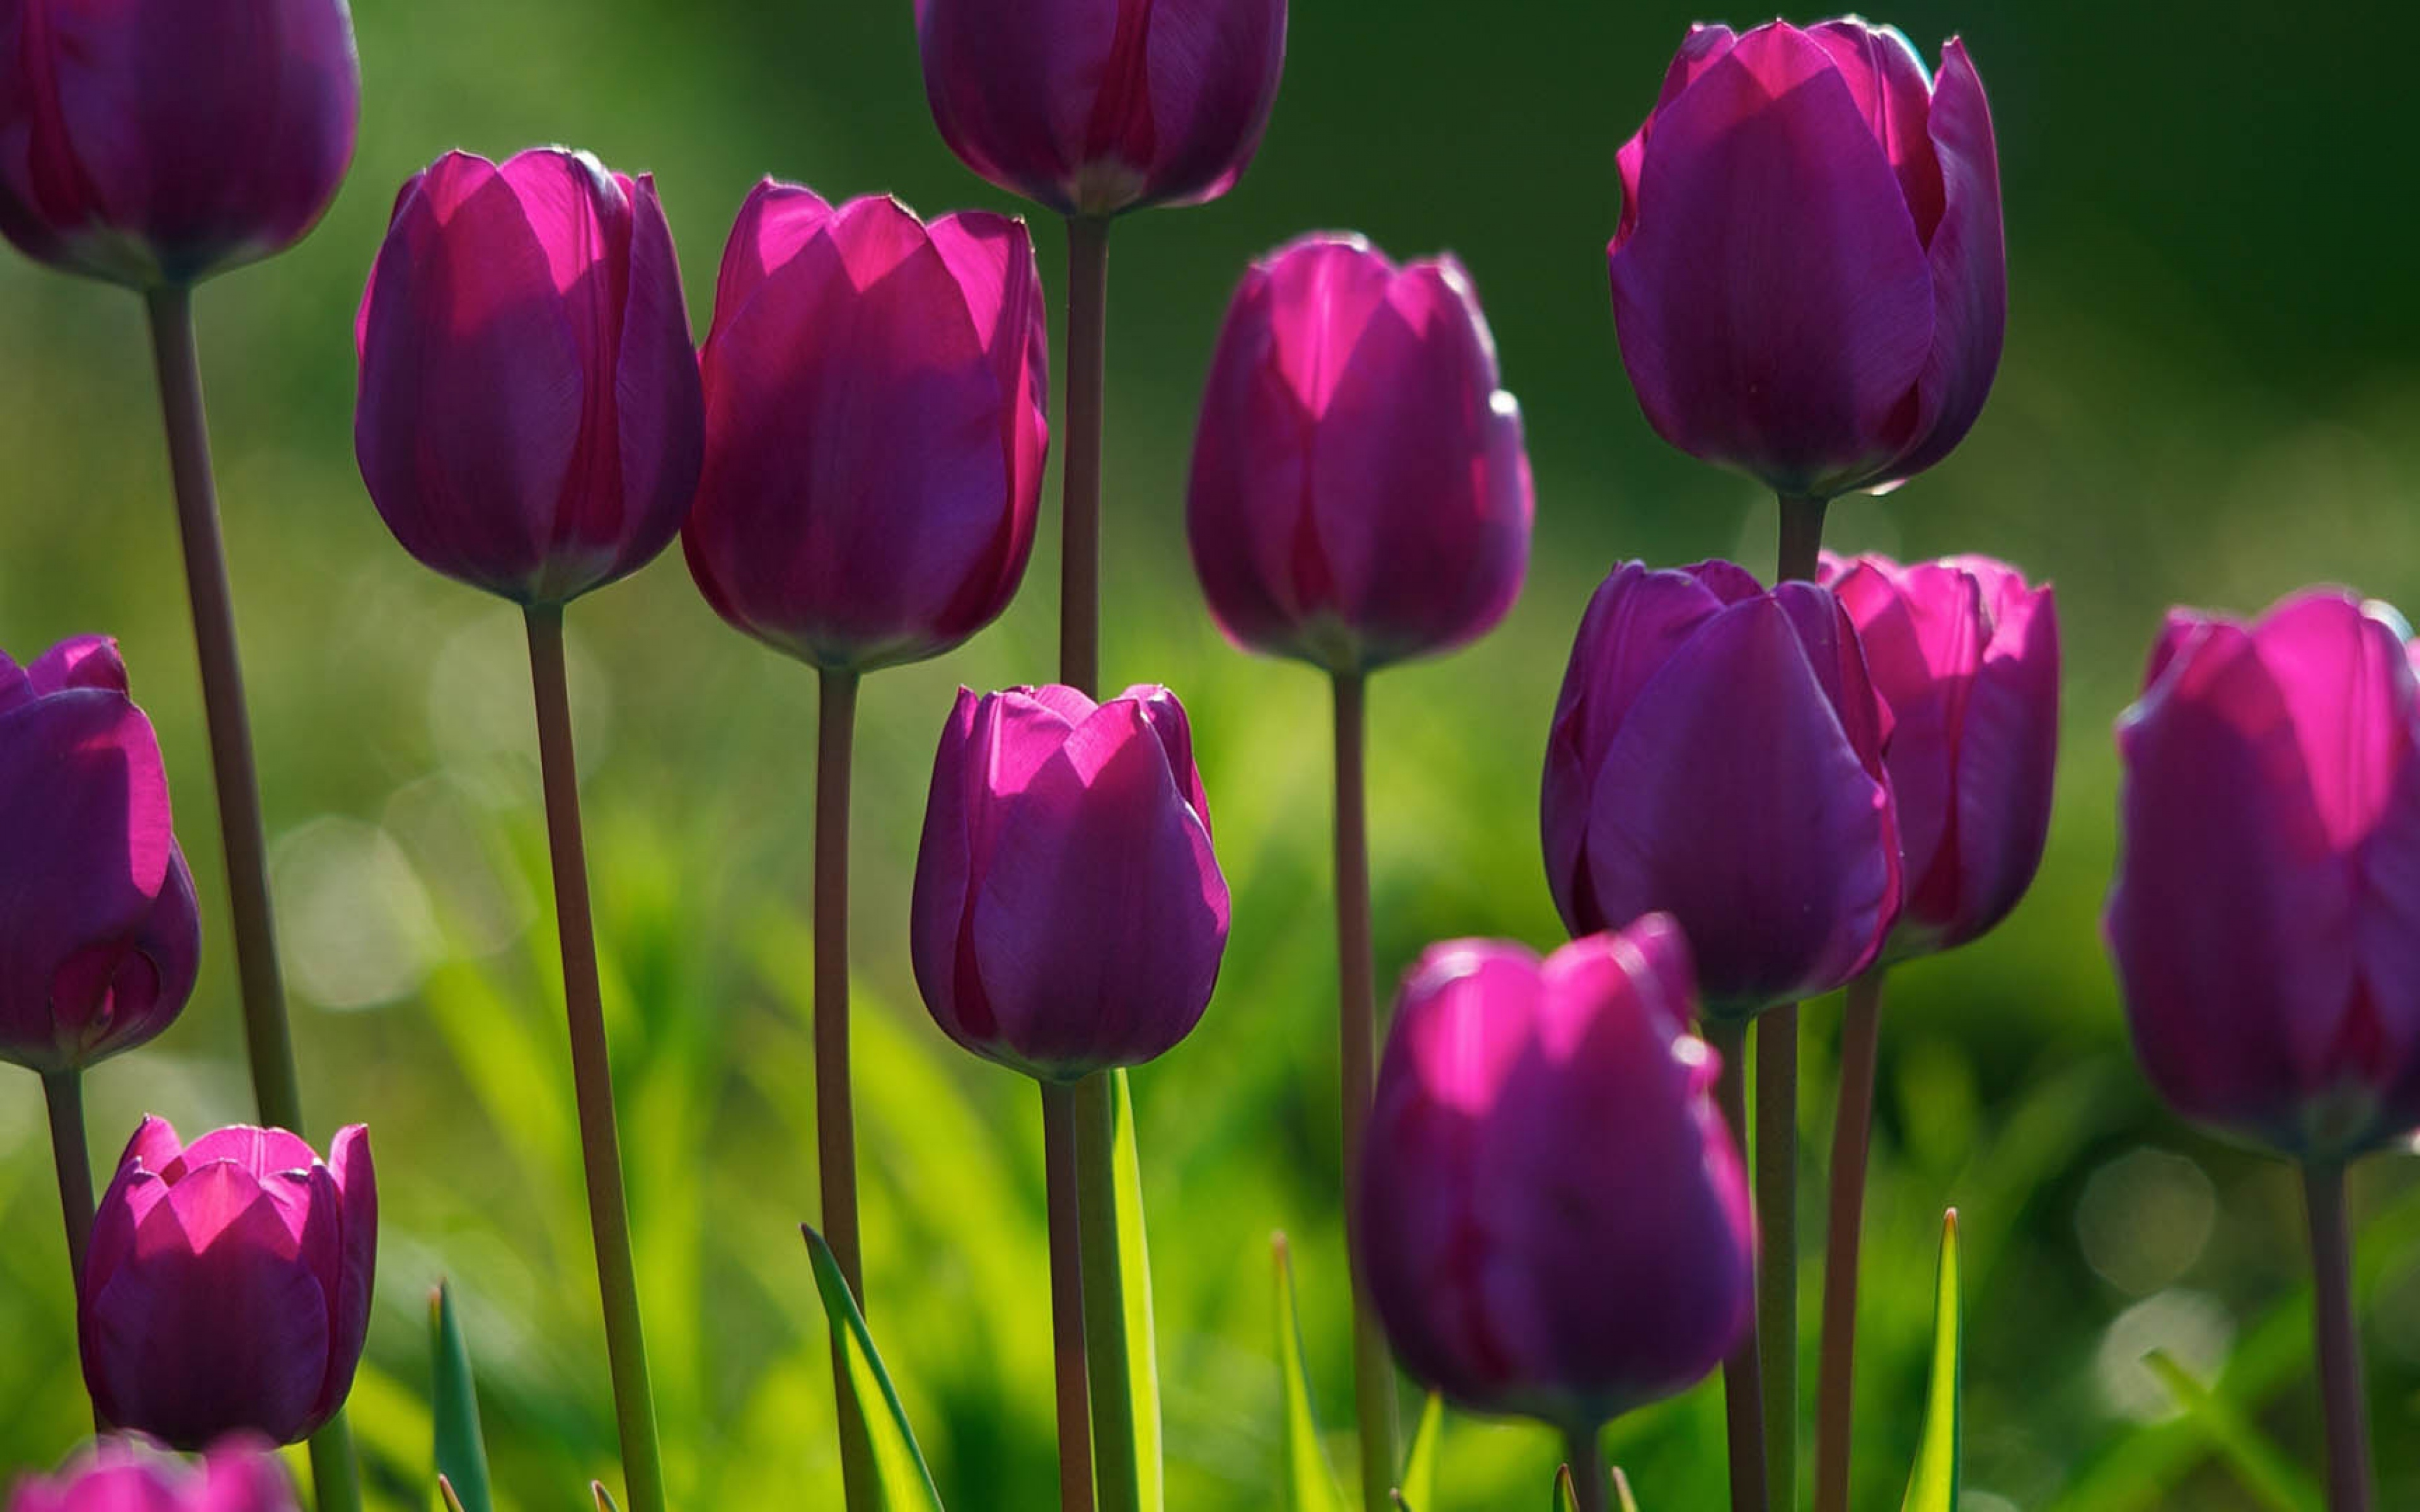 Purple Tulips Spring Flowers Wallpapers   My Carolina 3840x2400